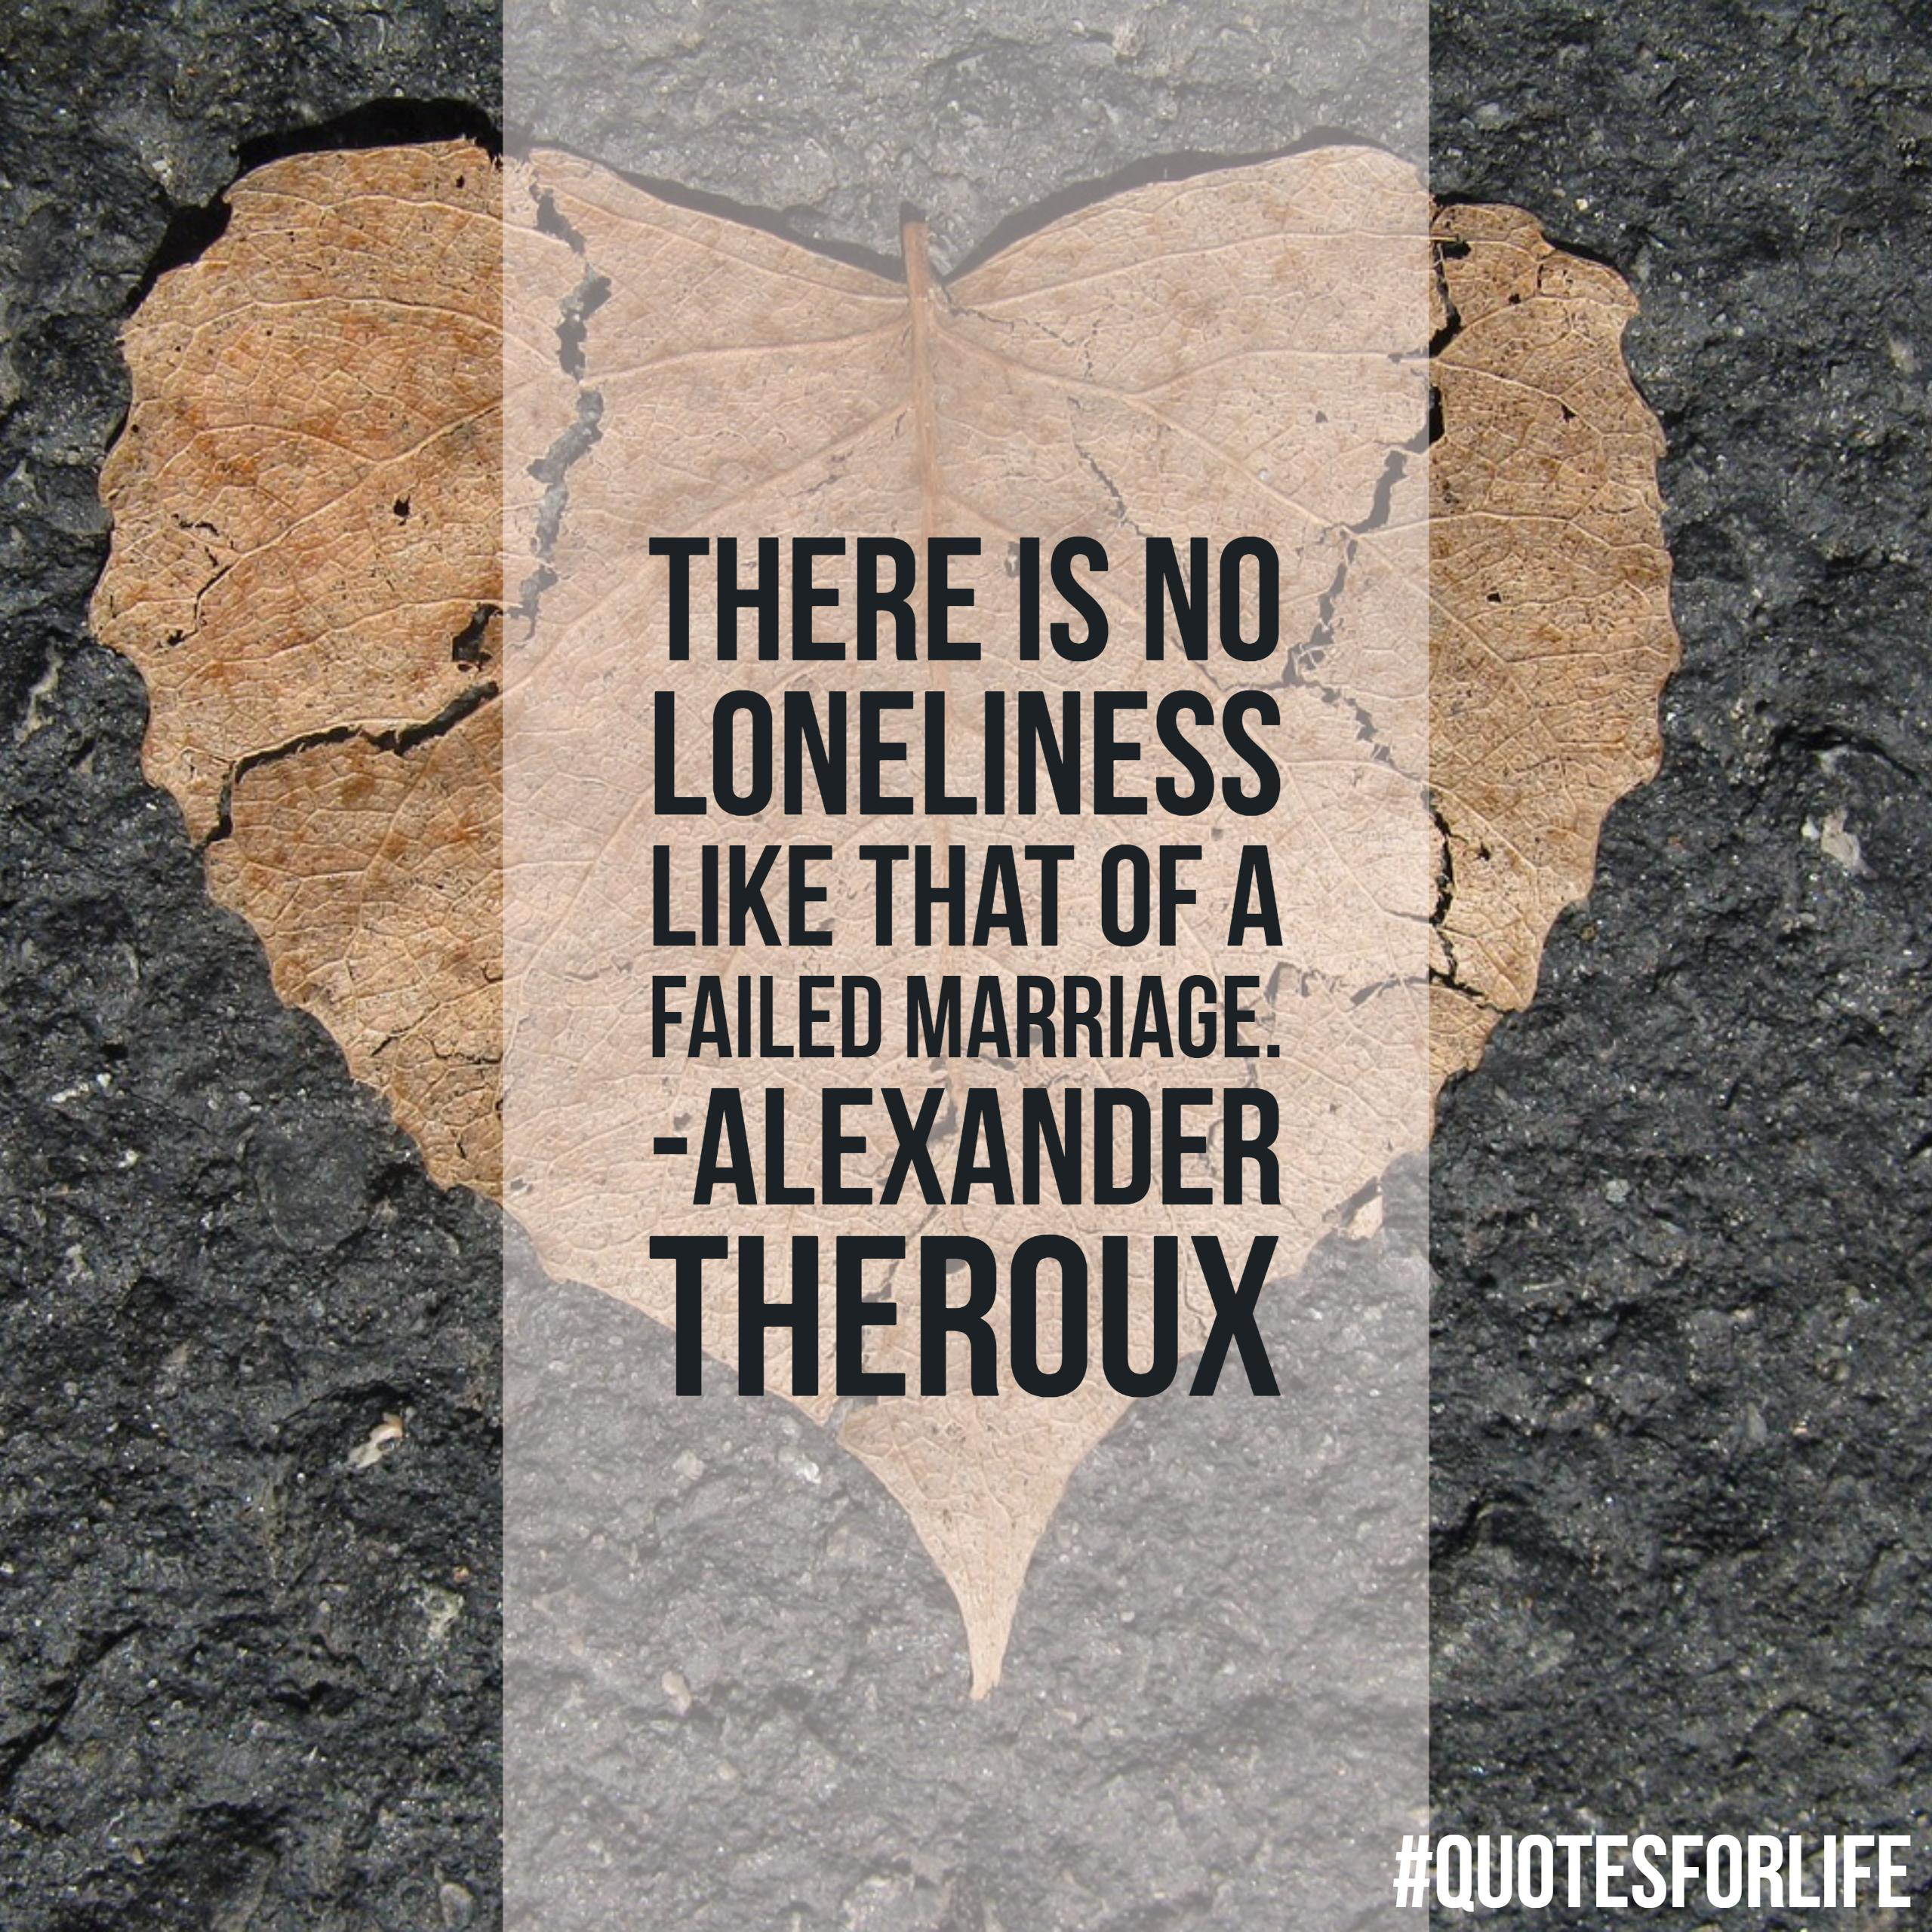 Alexander Theroux